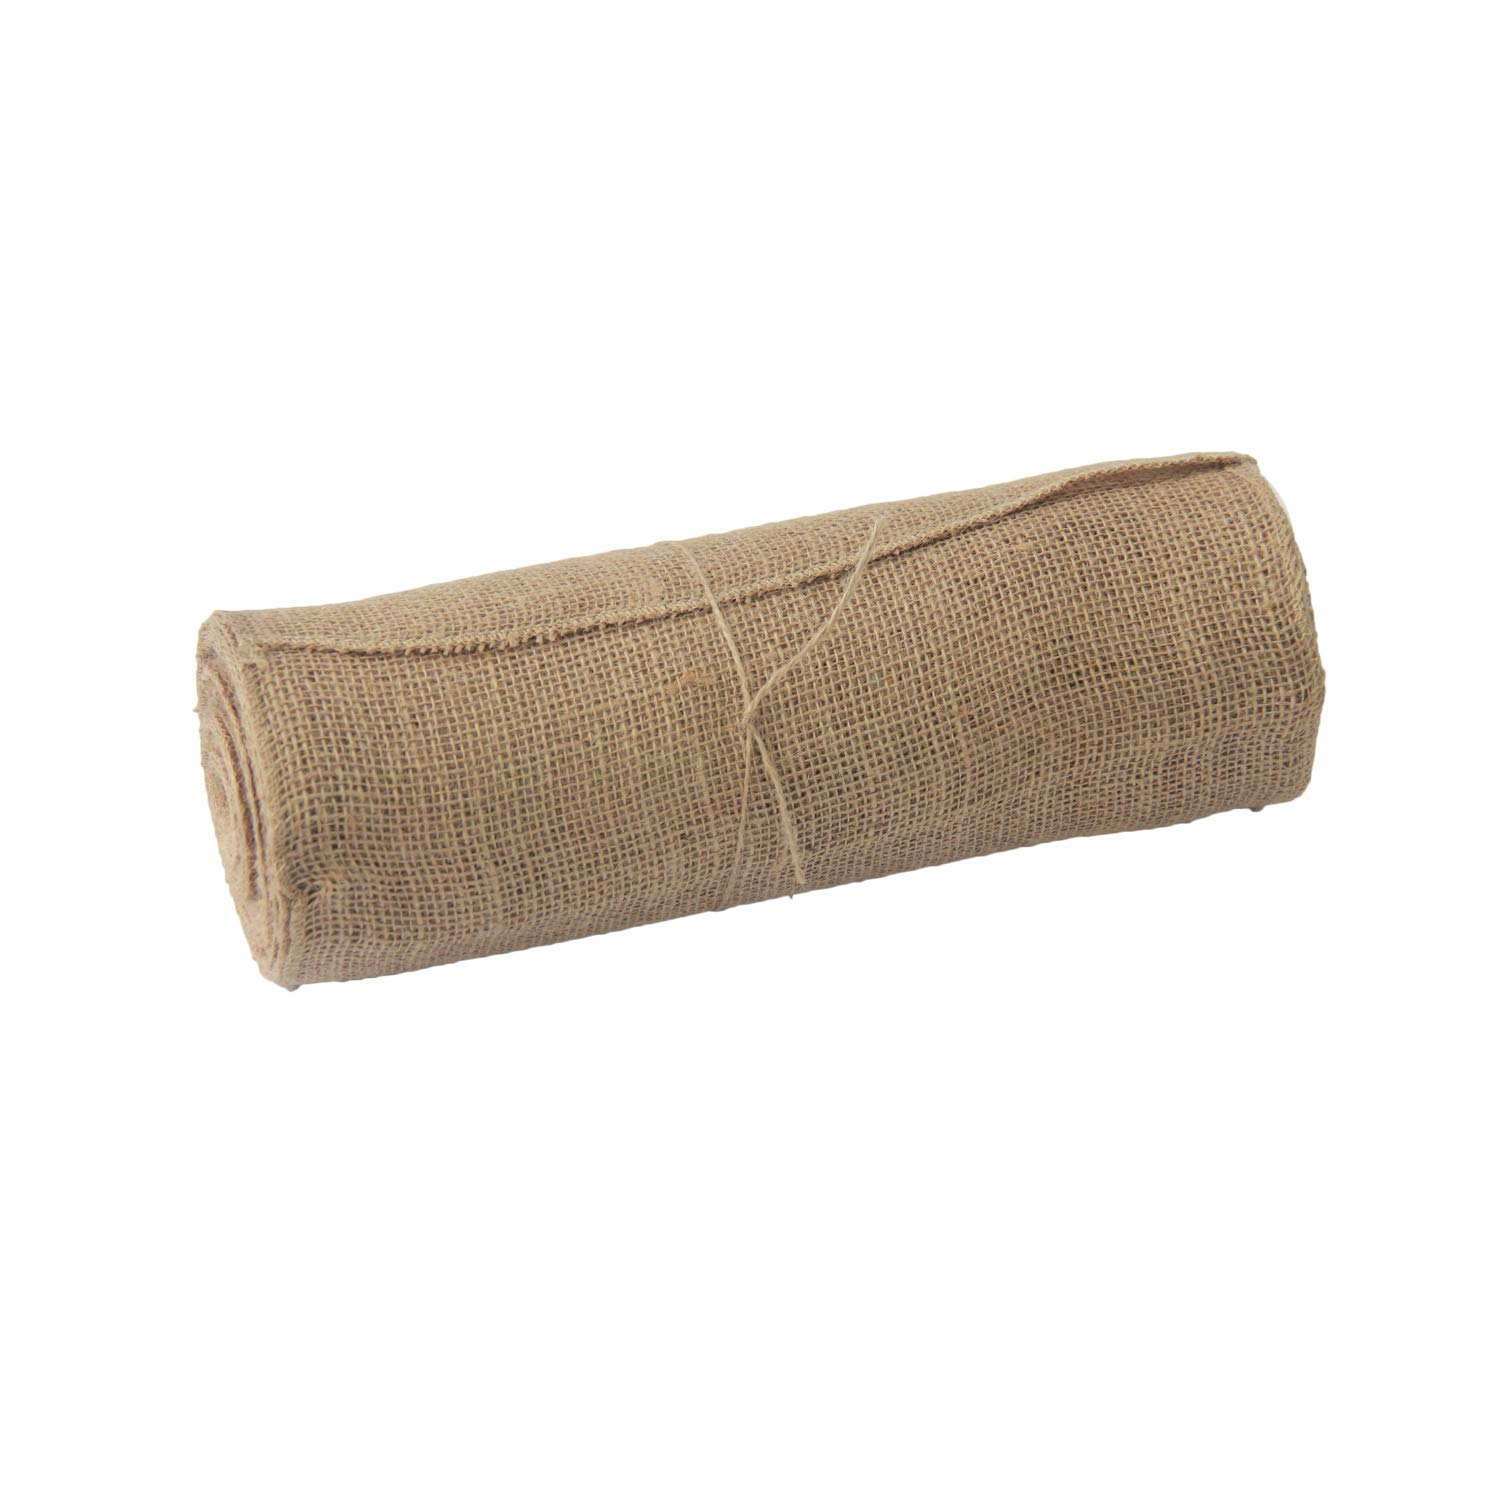 """WELMATCH Jute Burlap Table Runner Roll - Natural 12"""" x 10 Yards Hessian Tablue Runner with Finised Edges Banquet Wedding Party Event Decoration and Crafts (12"""" x 10 Yards,1)"""